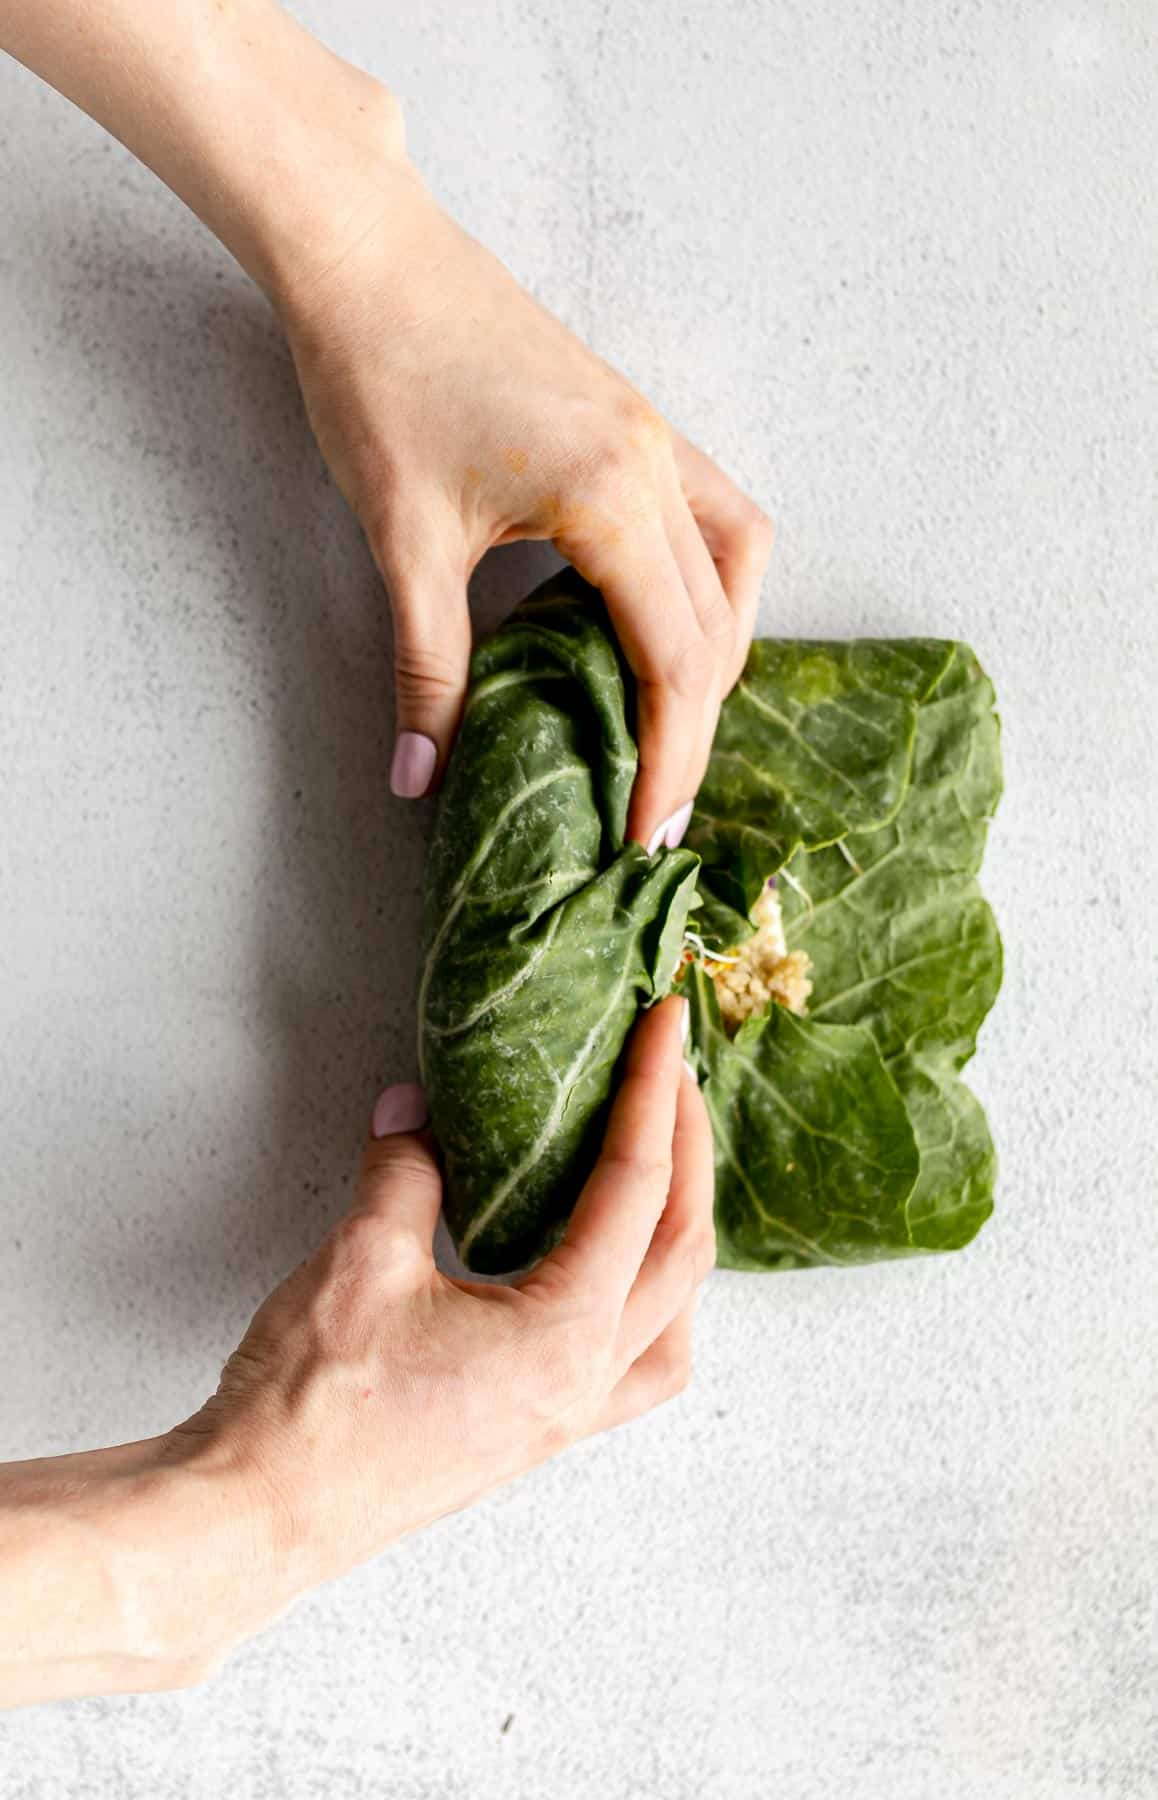 rolling up the collard leaves